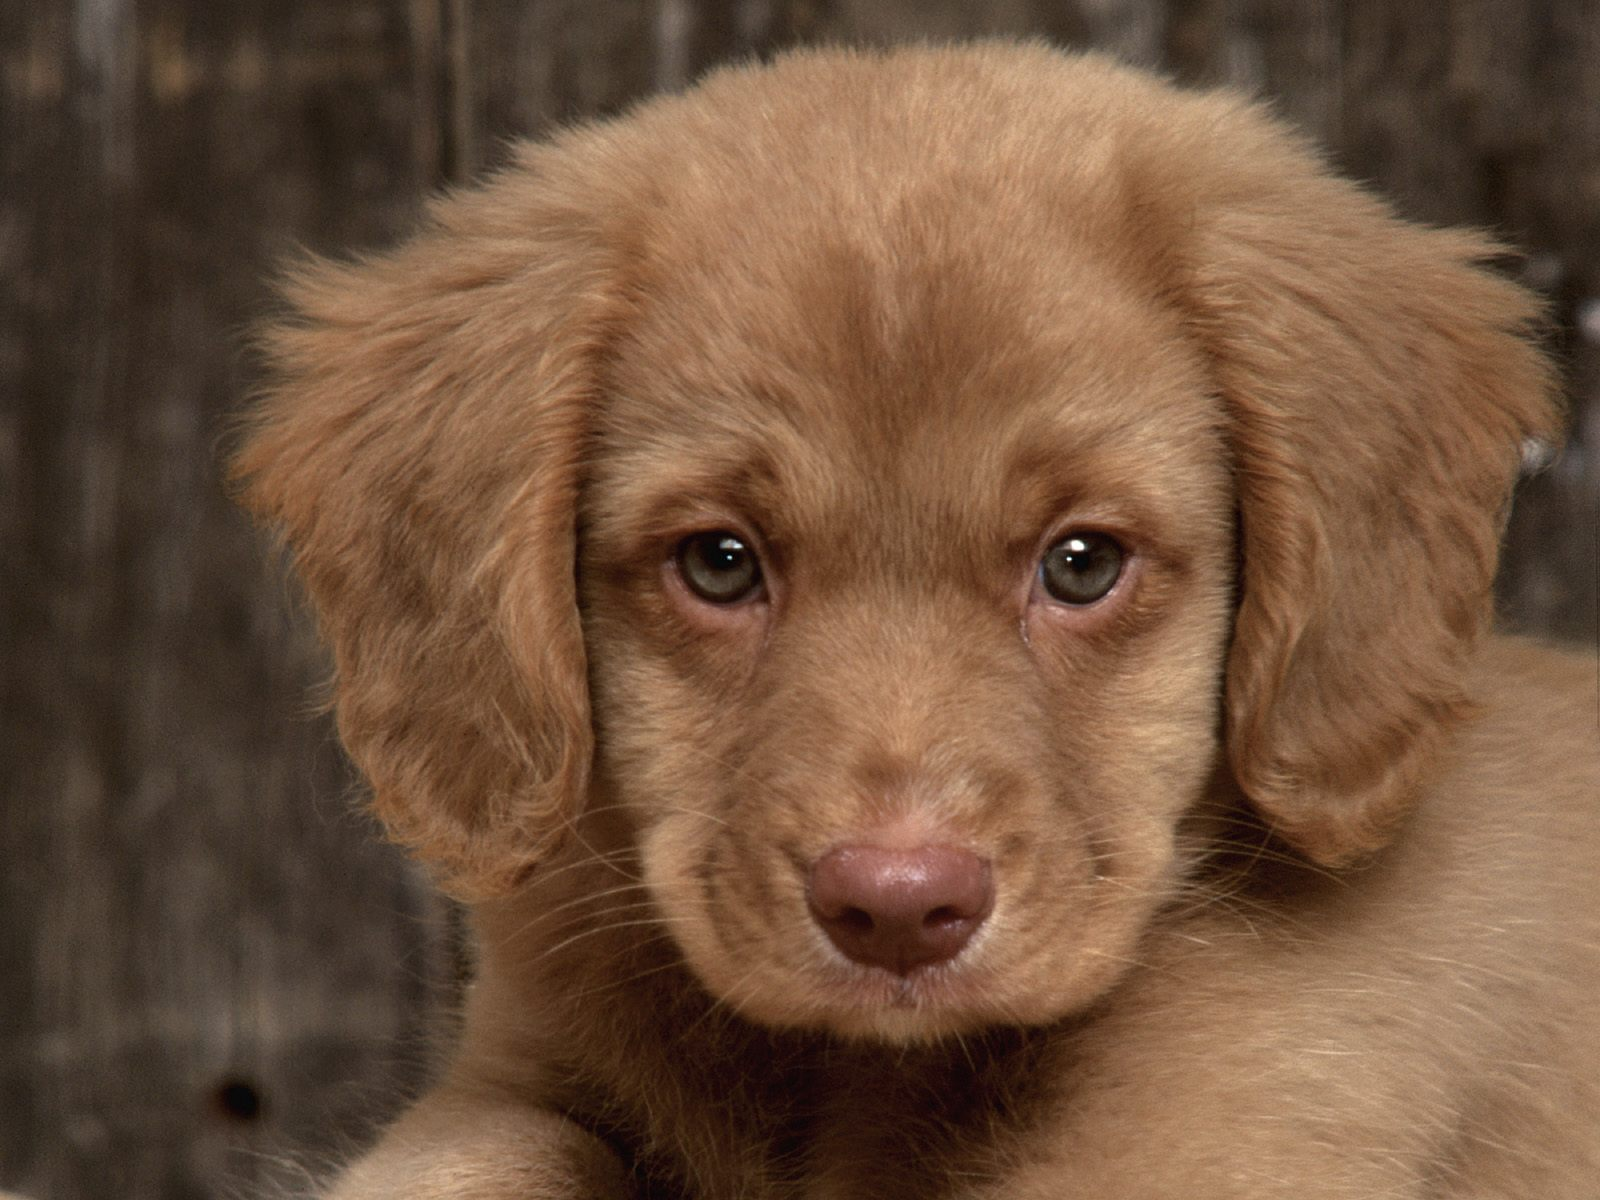 Zoo Park 8 Cute Puppies Wallpapers Cute Puppy Wallpapers for Desktop 1600x1200